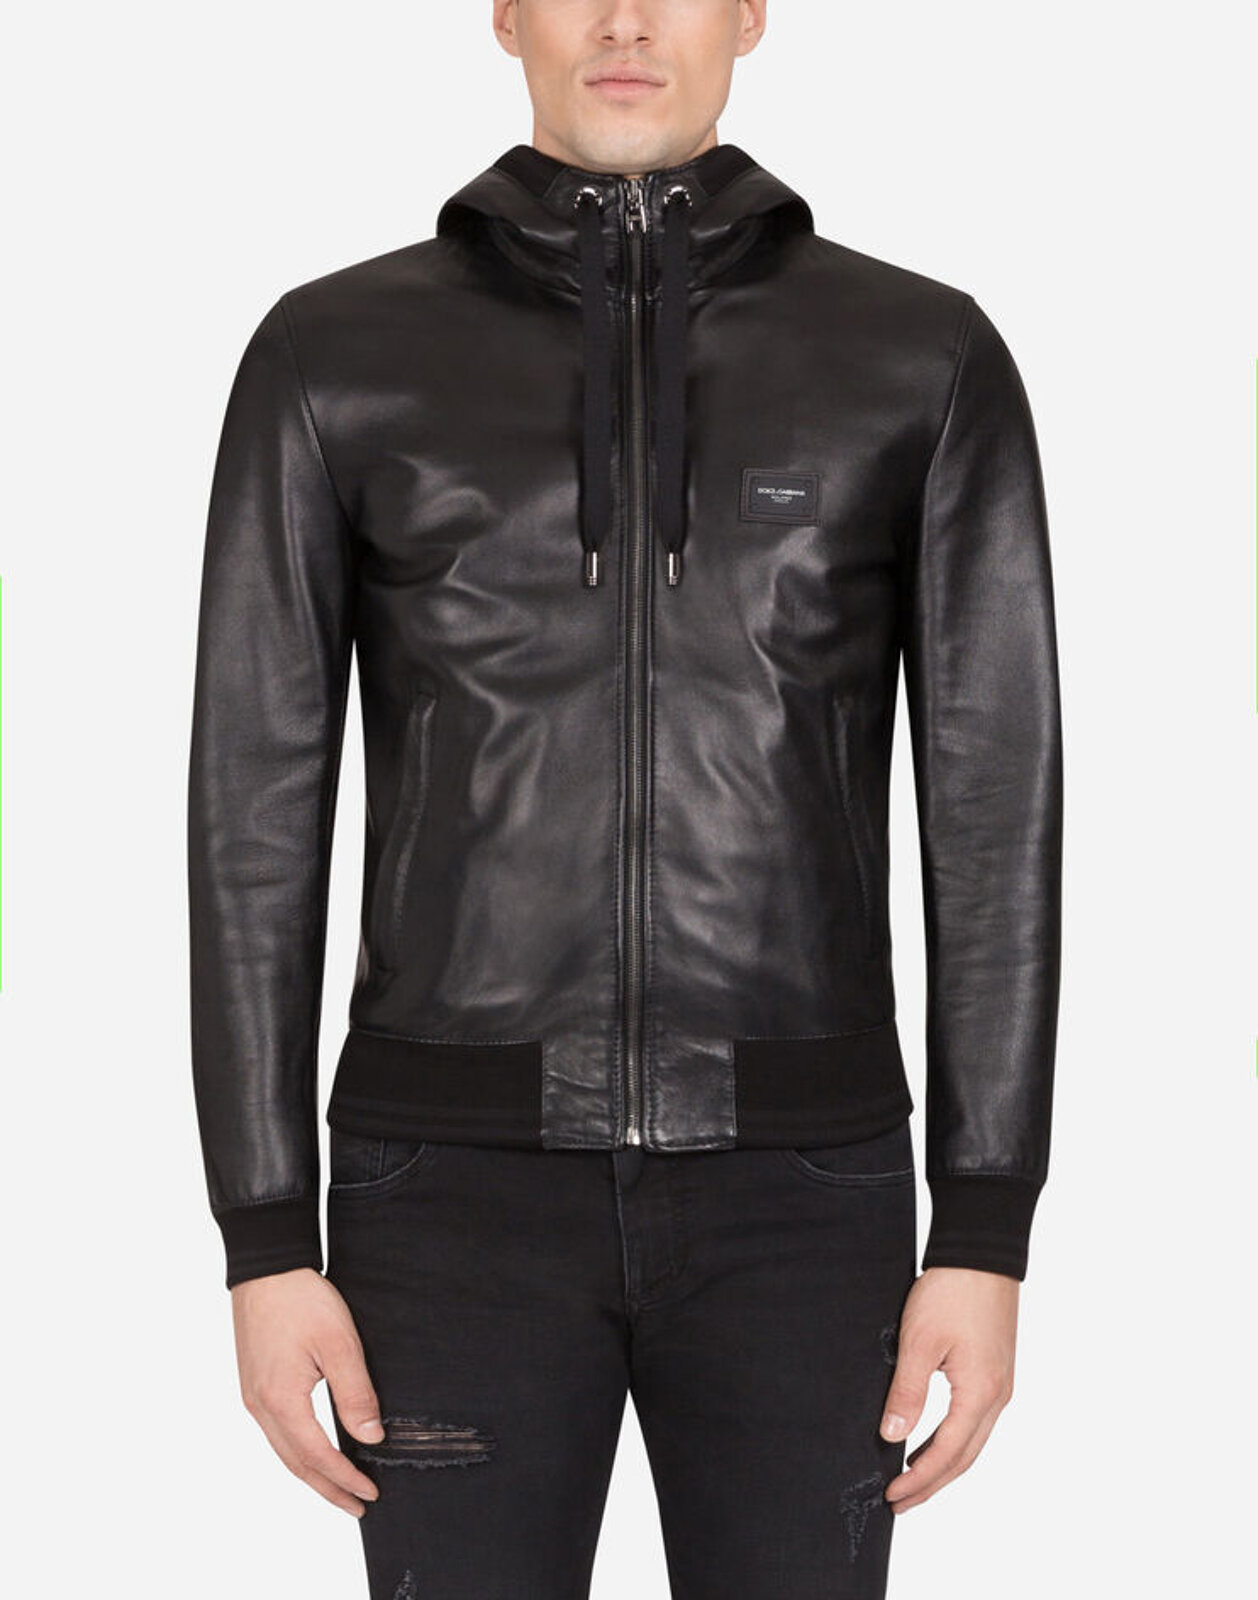 Leather Jacket With Hood And Logo Plate - Dolce & Gabbana